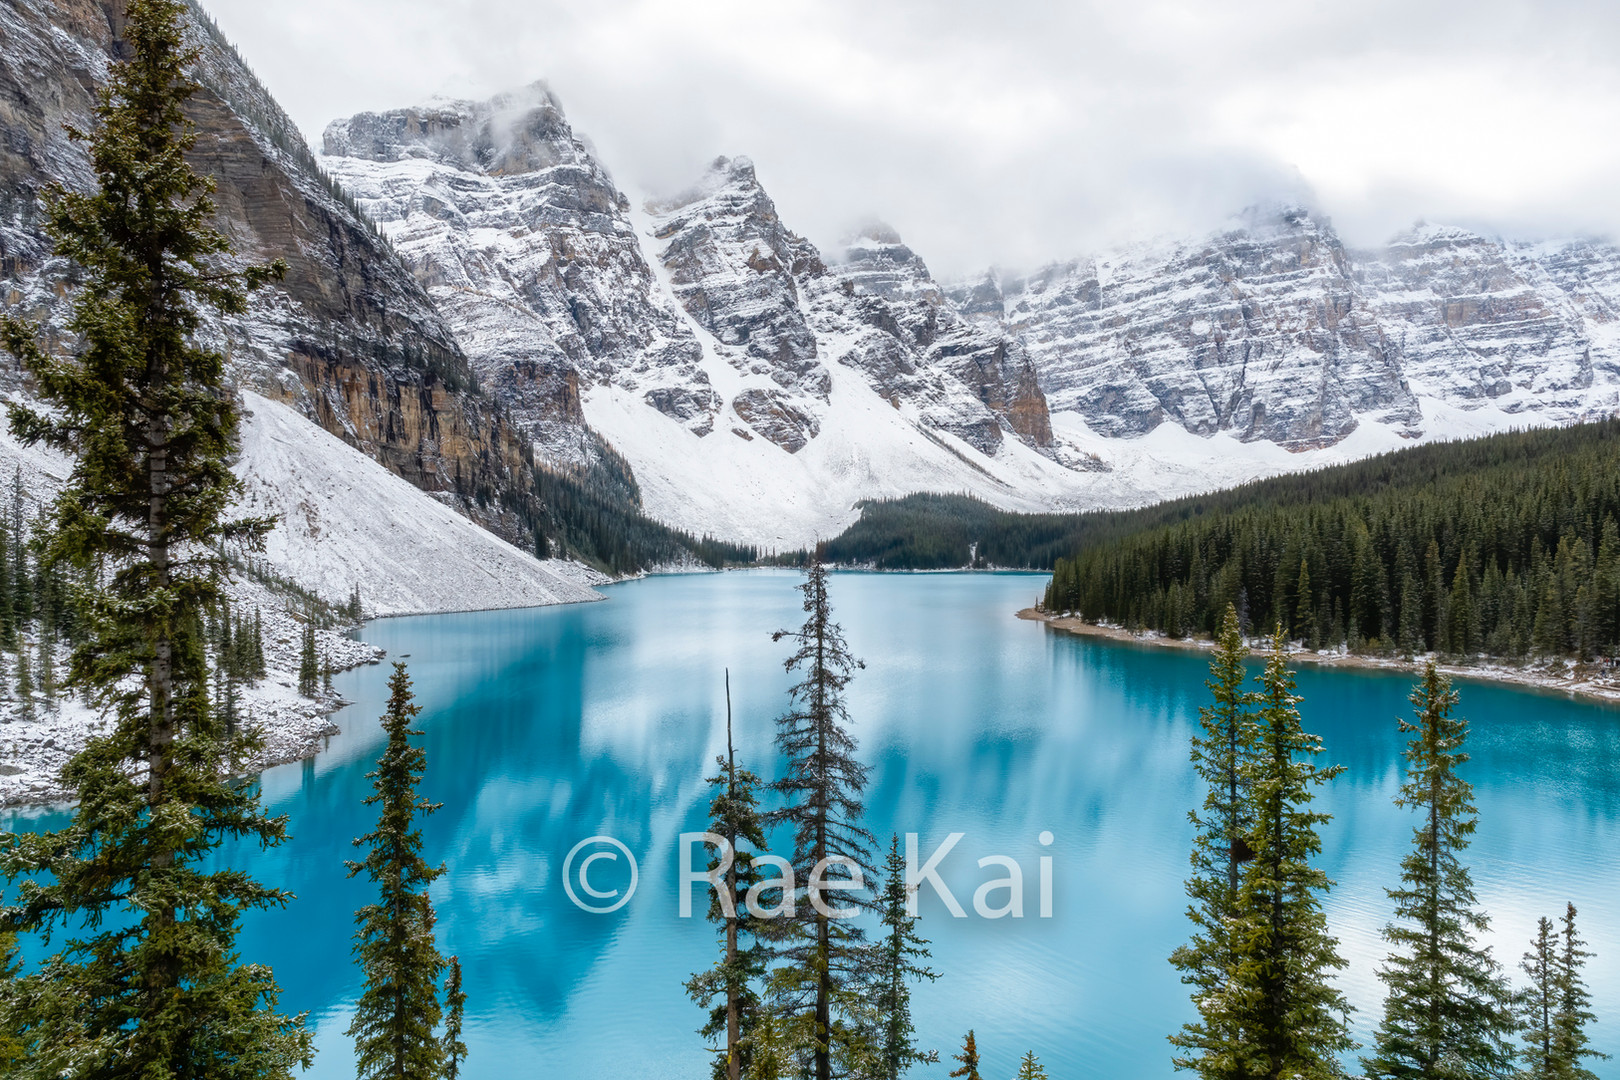 FULLFRAME MORRAINE LAKE WINTER.jpg